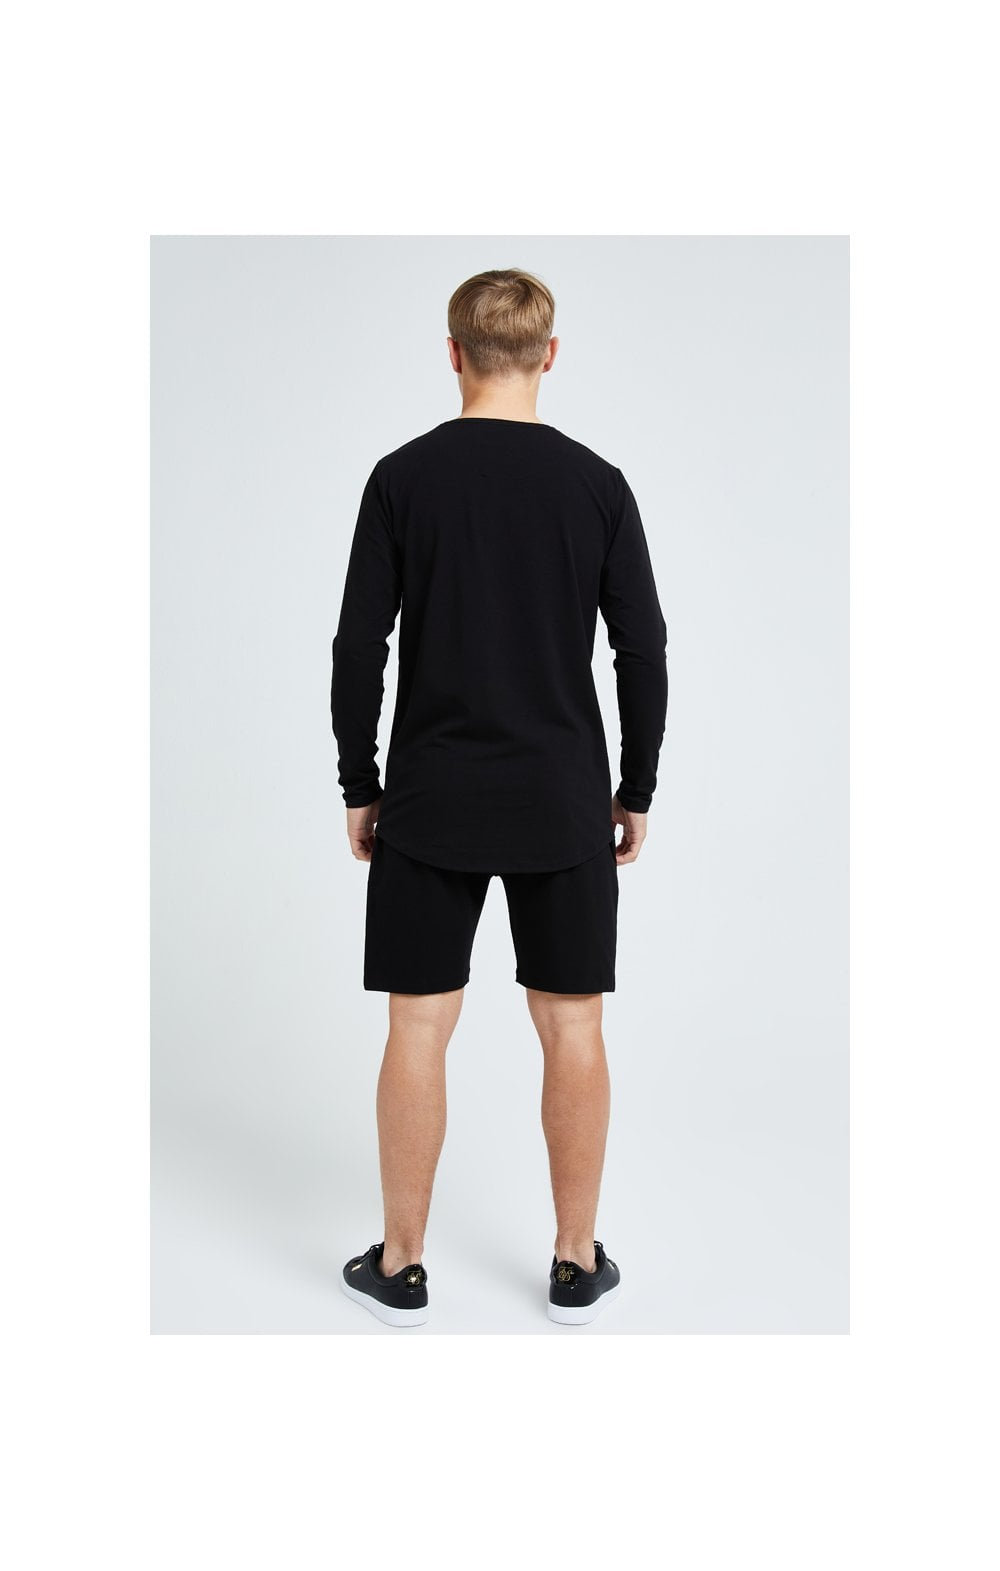 Illusive London L/S Core Tee - Black (5)